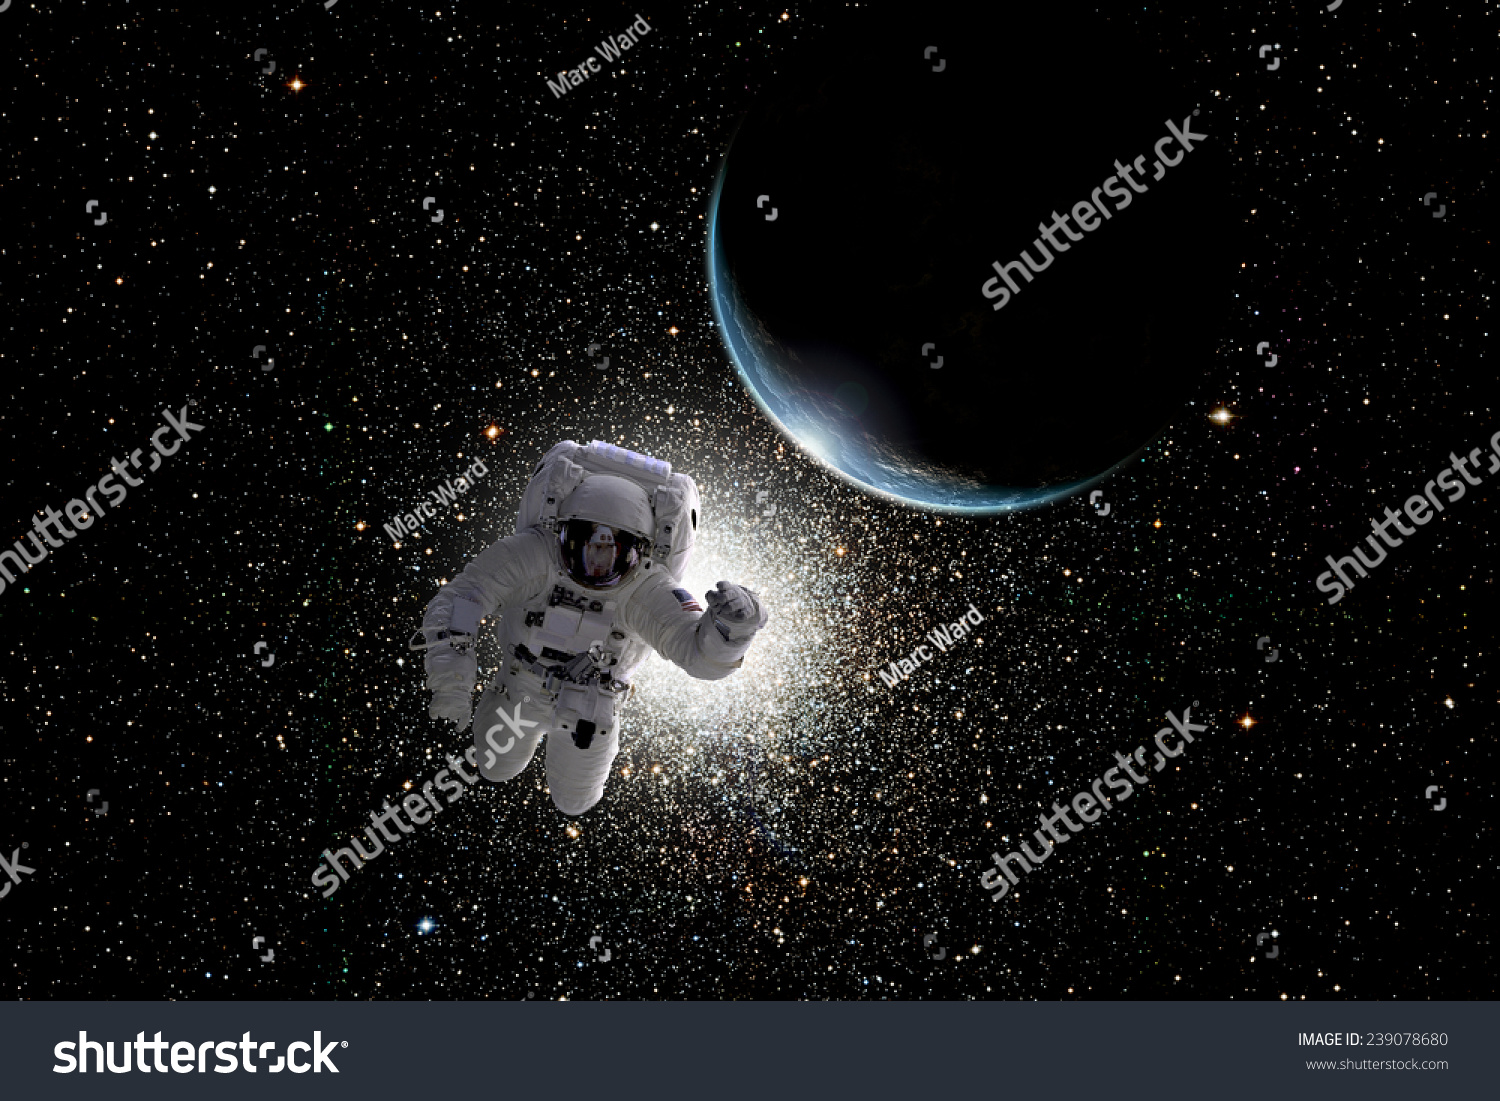 an astronaut in the spaceship sees the sky as - photo #9